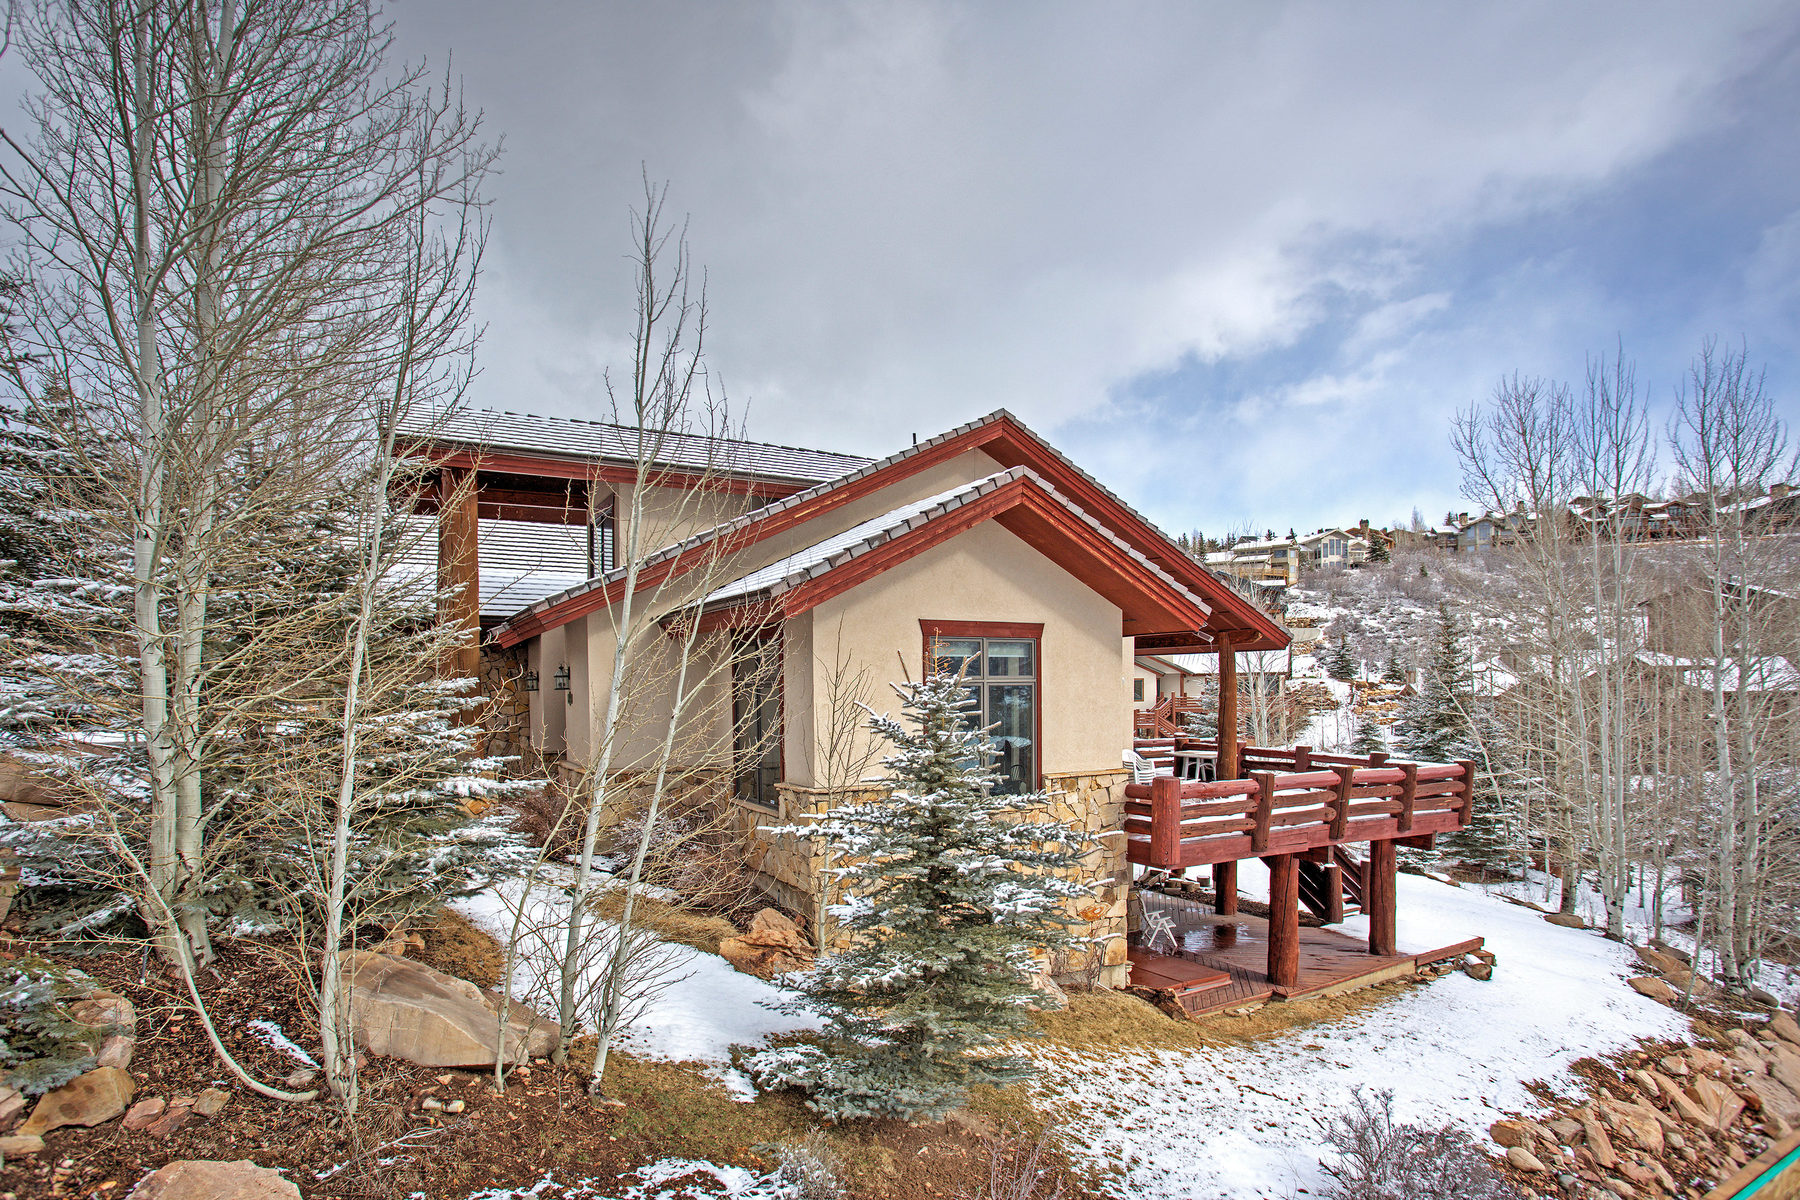 Property For Sale at Deer Valley Home Minutes from Ski Resort